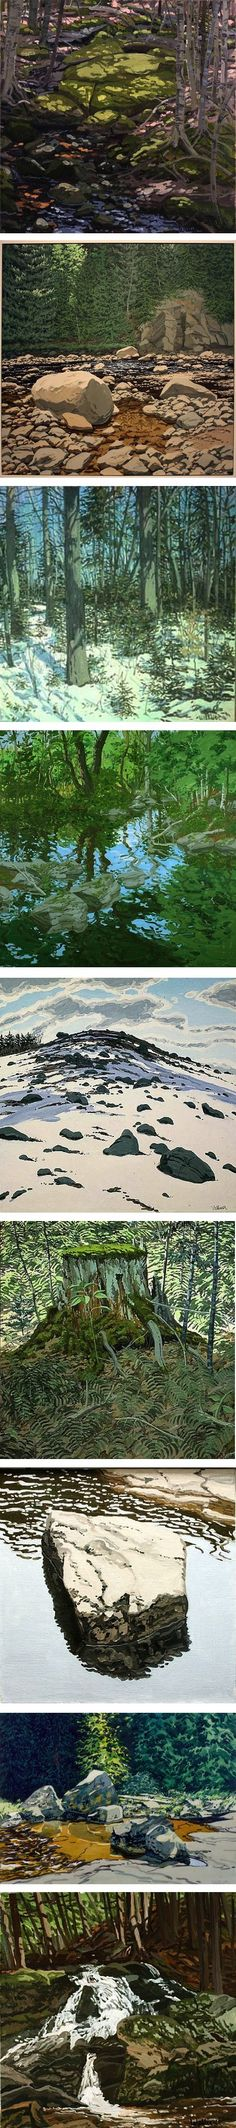 Just discovered Maine artist Neil Welliver. Beautiful, large-scale work. Wish I could find an affordable print or poster. Mostly landscapes, but really vibrant.